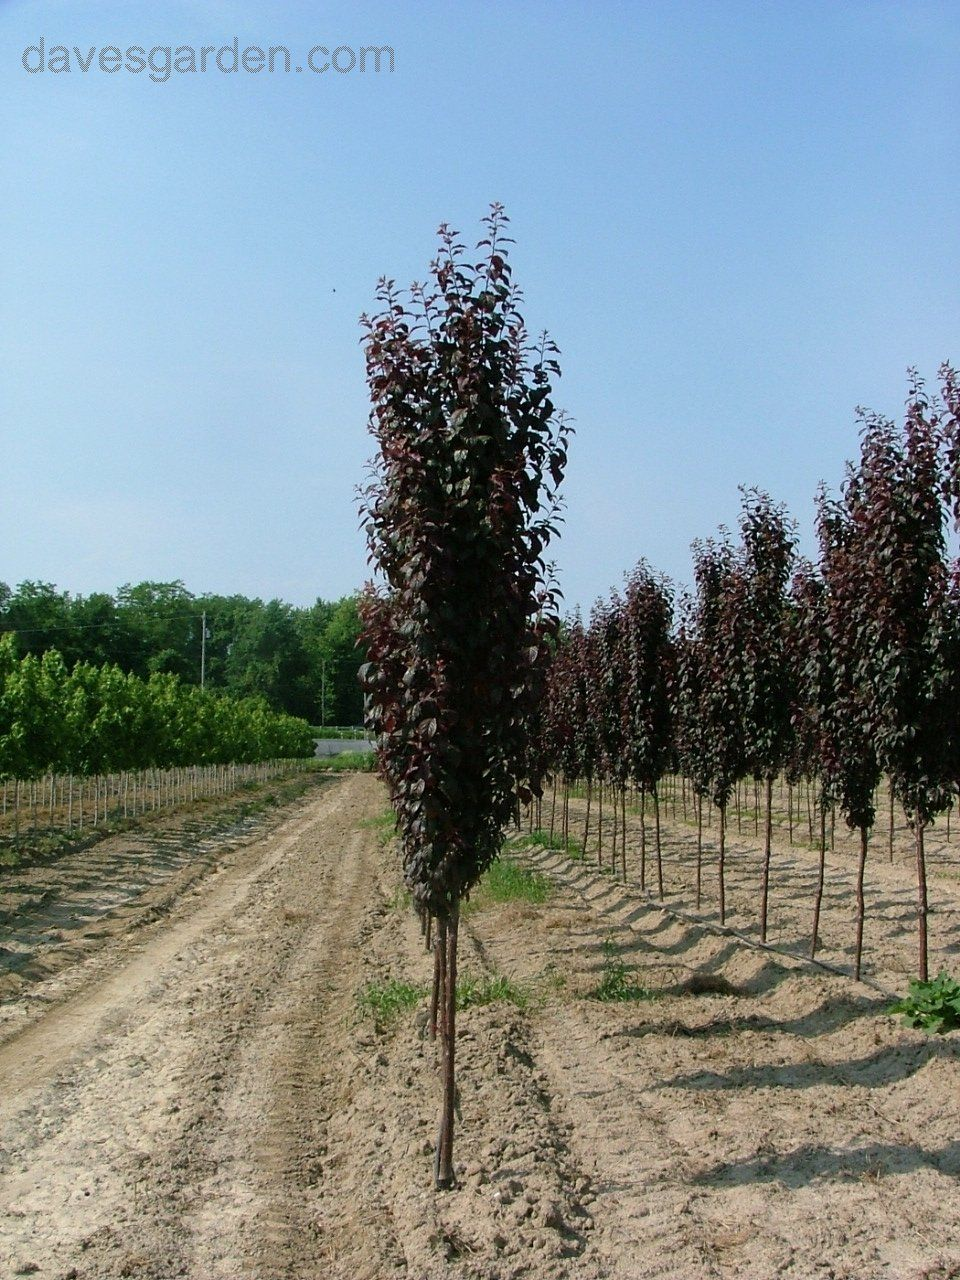 Wisconsin Gardening Enewsletter: Based On What I Know About Trees That Are Grown In